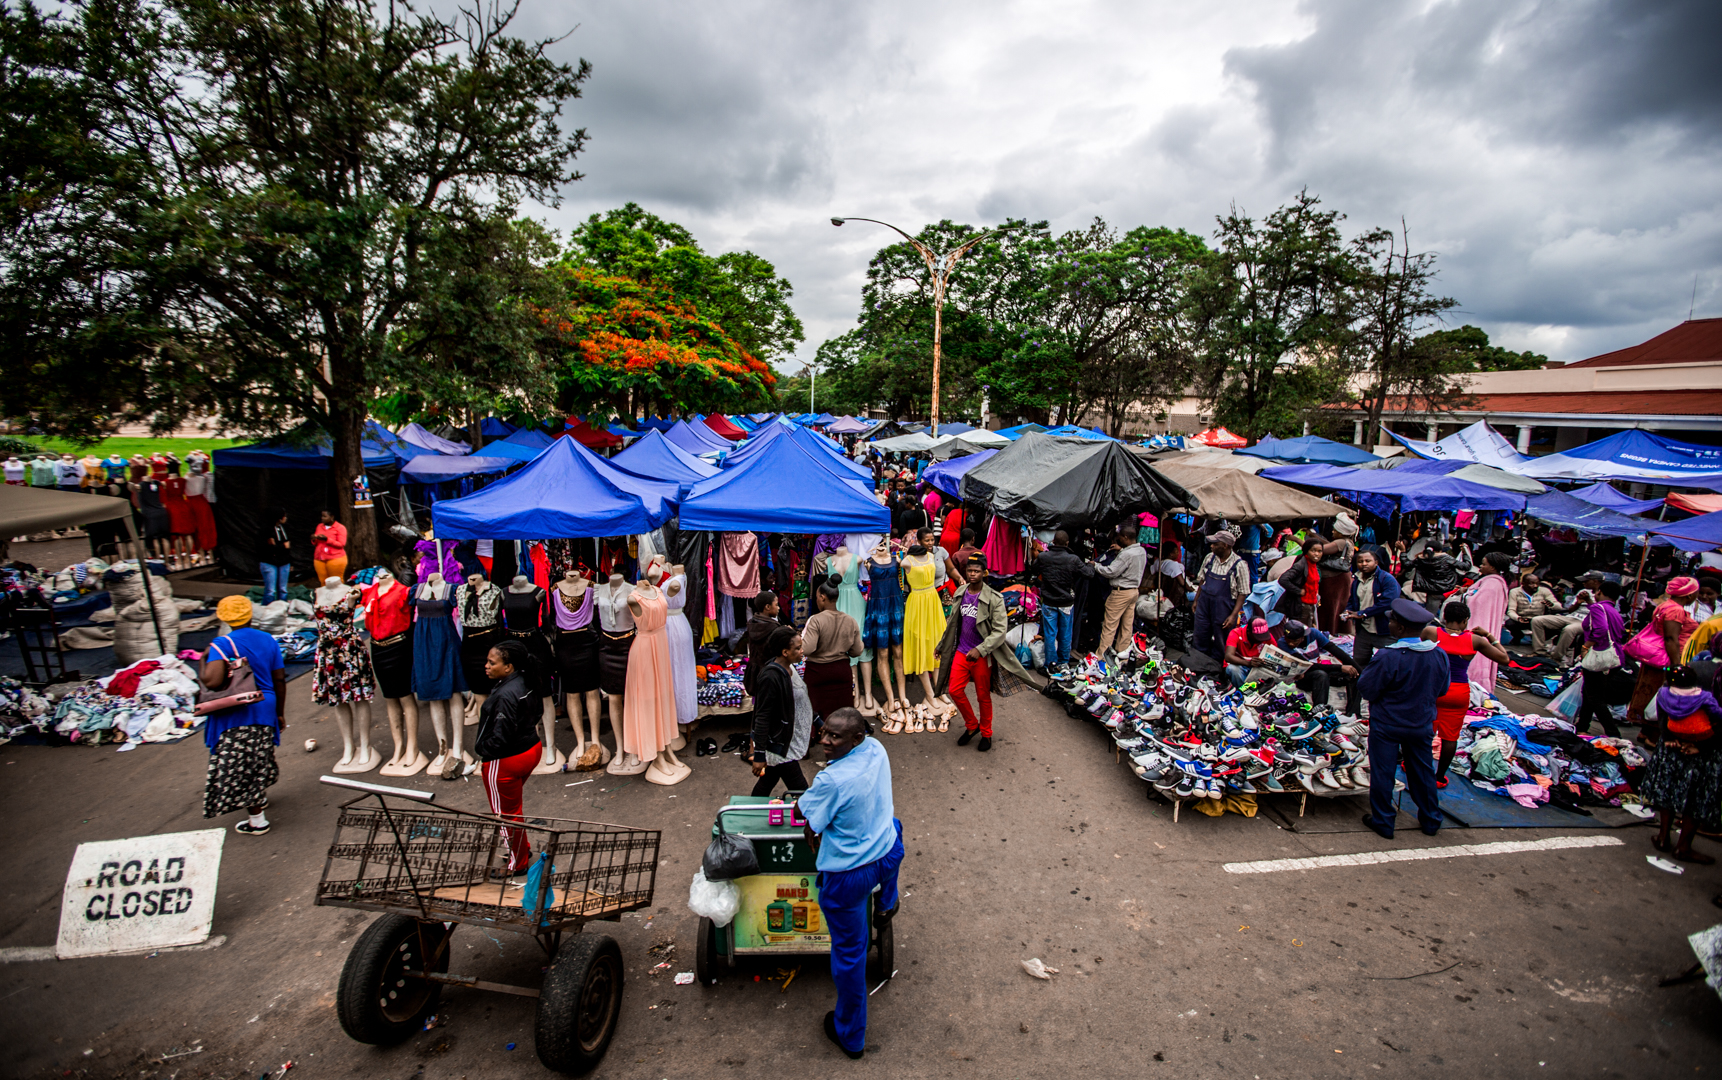 Market day in Harare, Zimbabwe. Street markets and local shopping are a must-do on all trips.